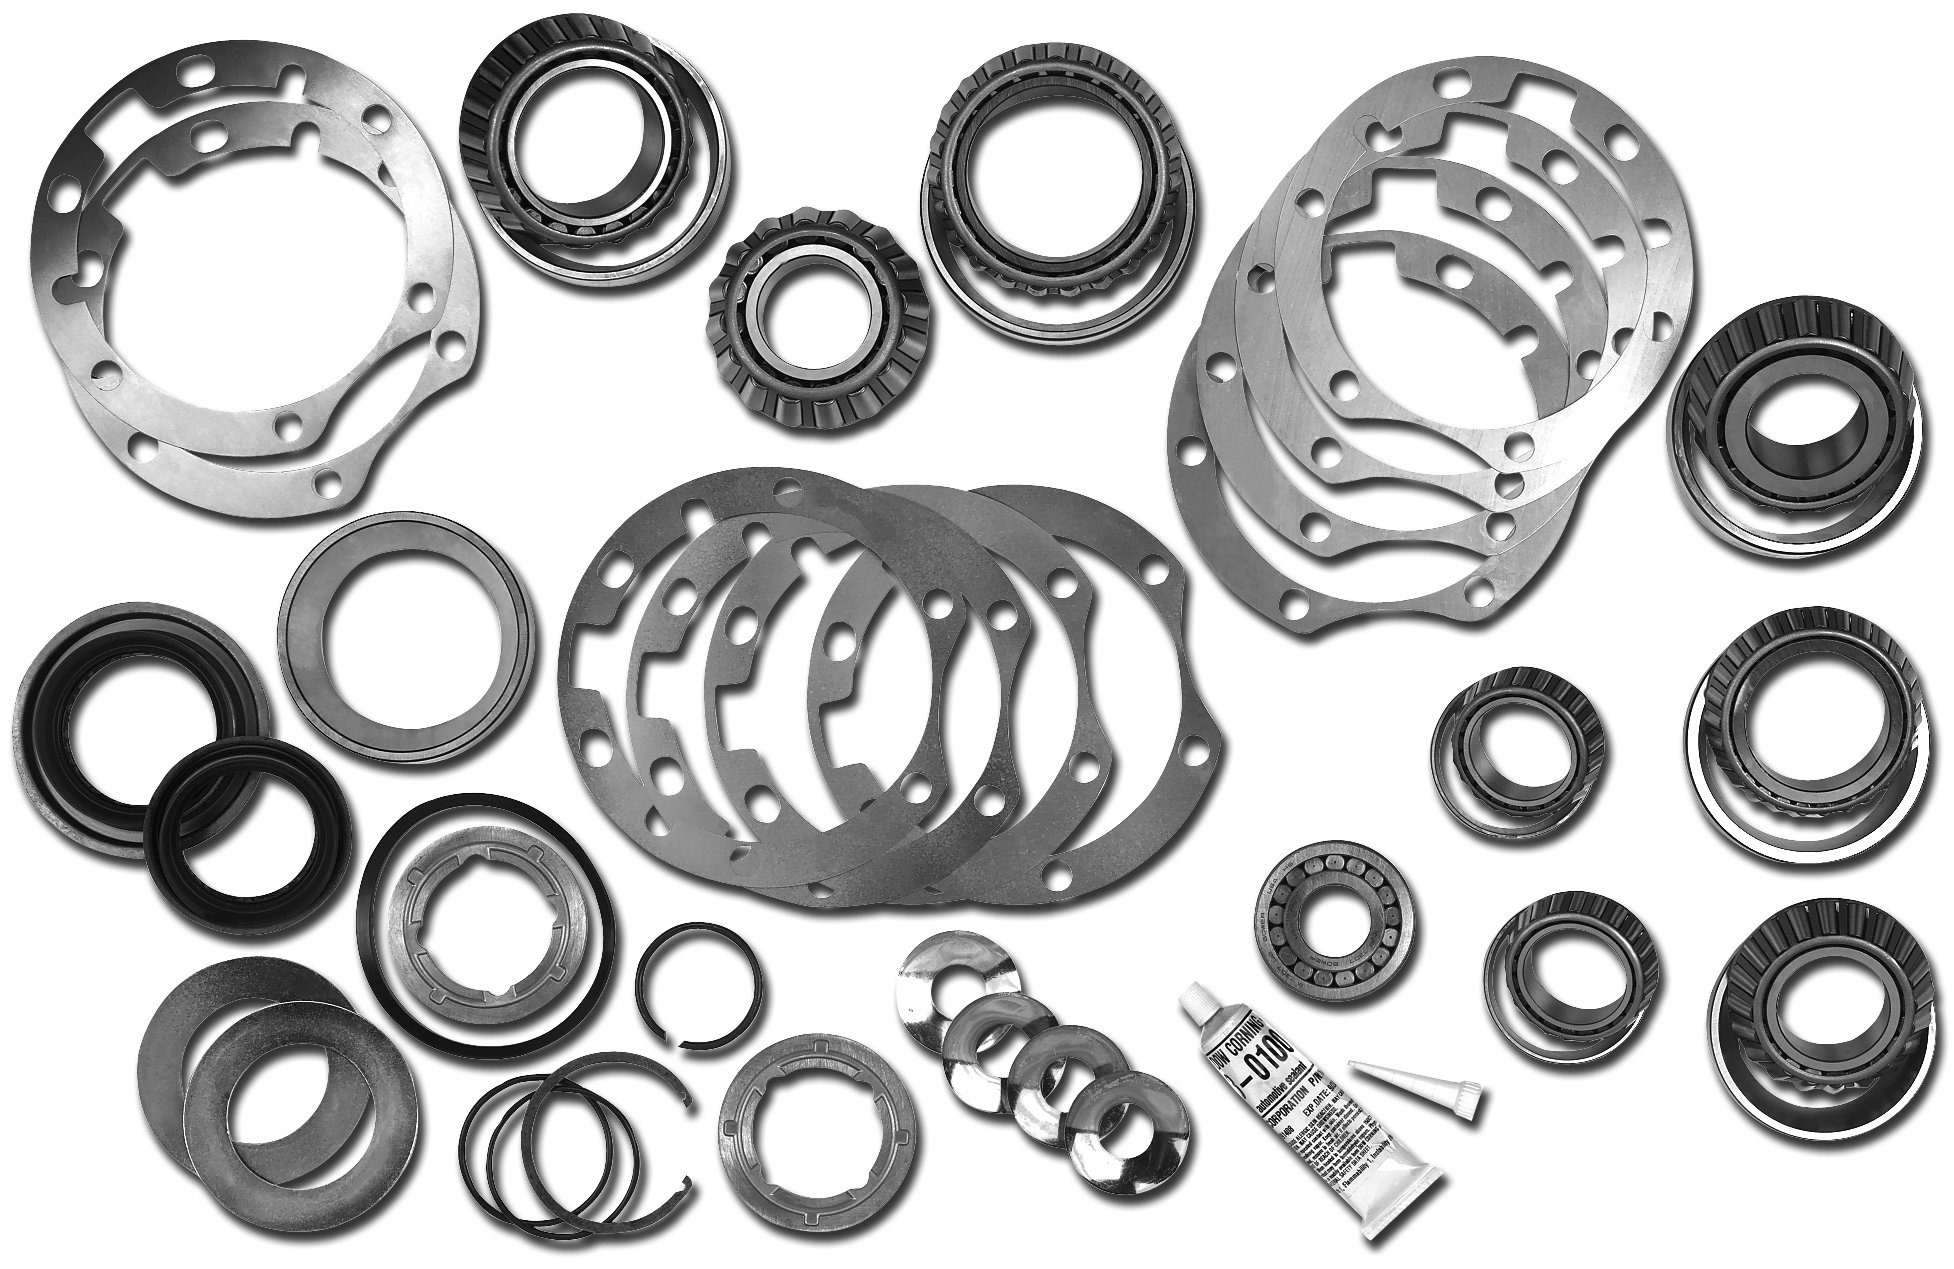 Dana Spicer 2017110 Master Axle Overhaul Kit for 08-11